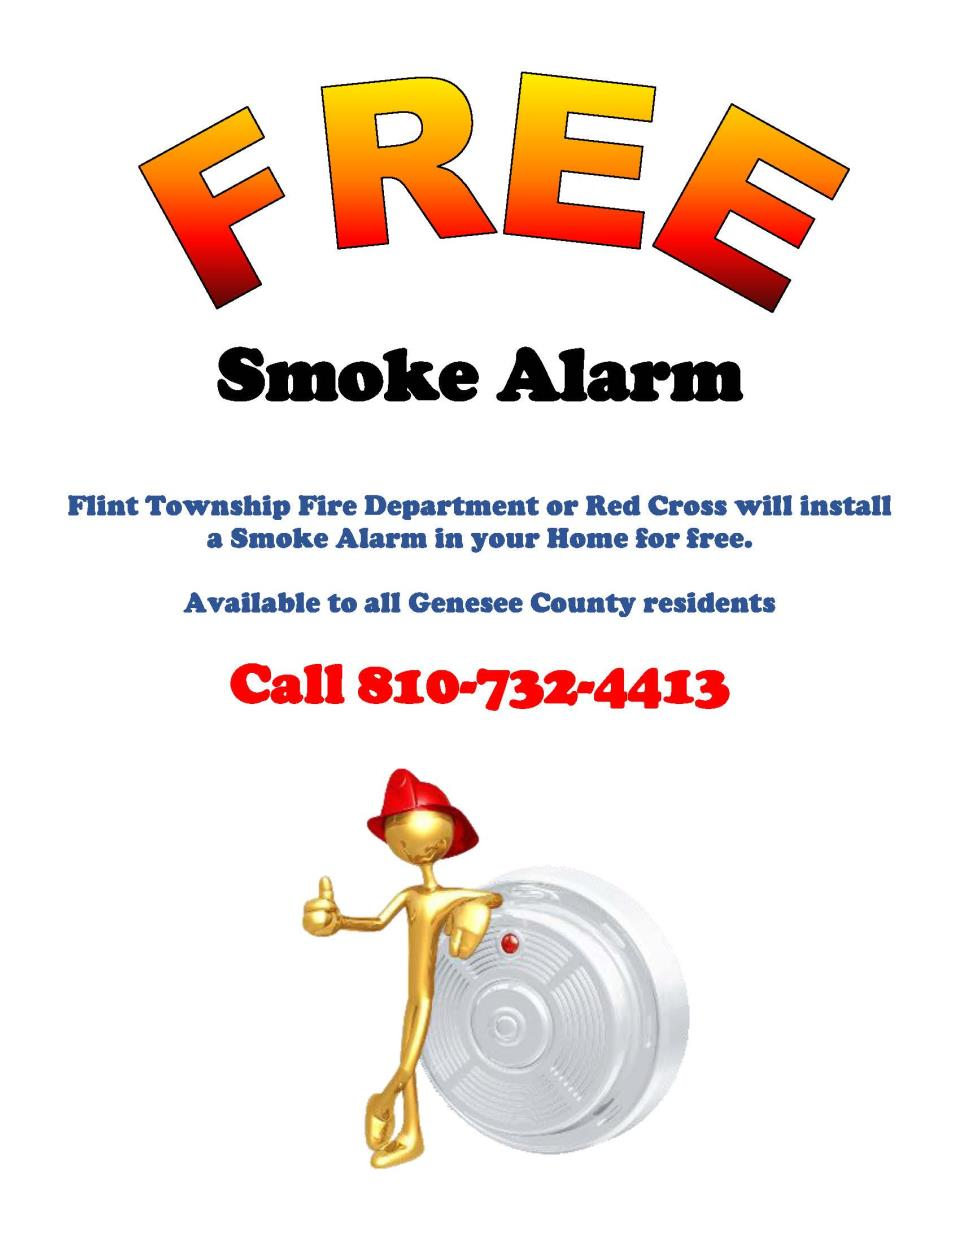 Flint Township Fire Dept or Red Cross will install a smoke alarm in your home for free. call 810-732-4413